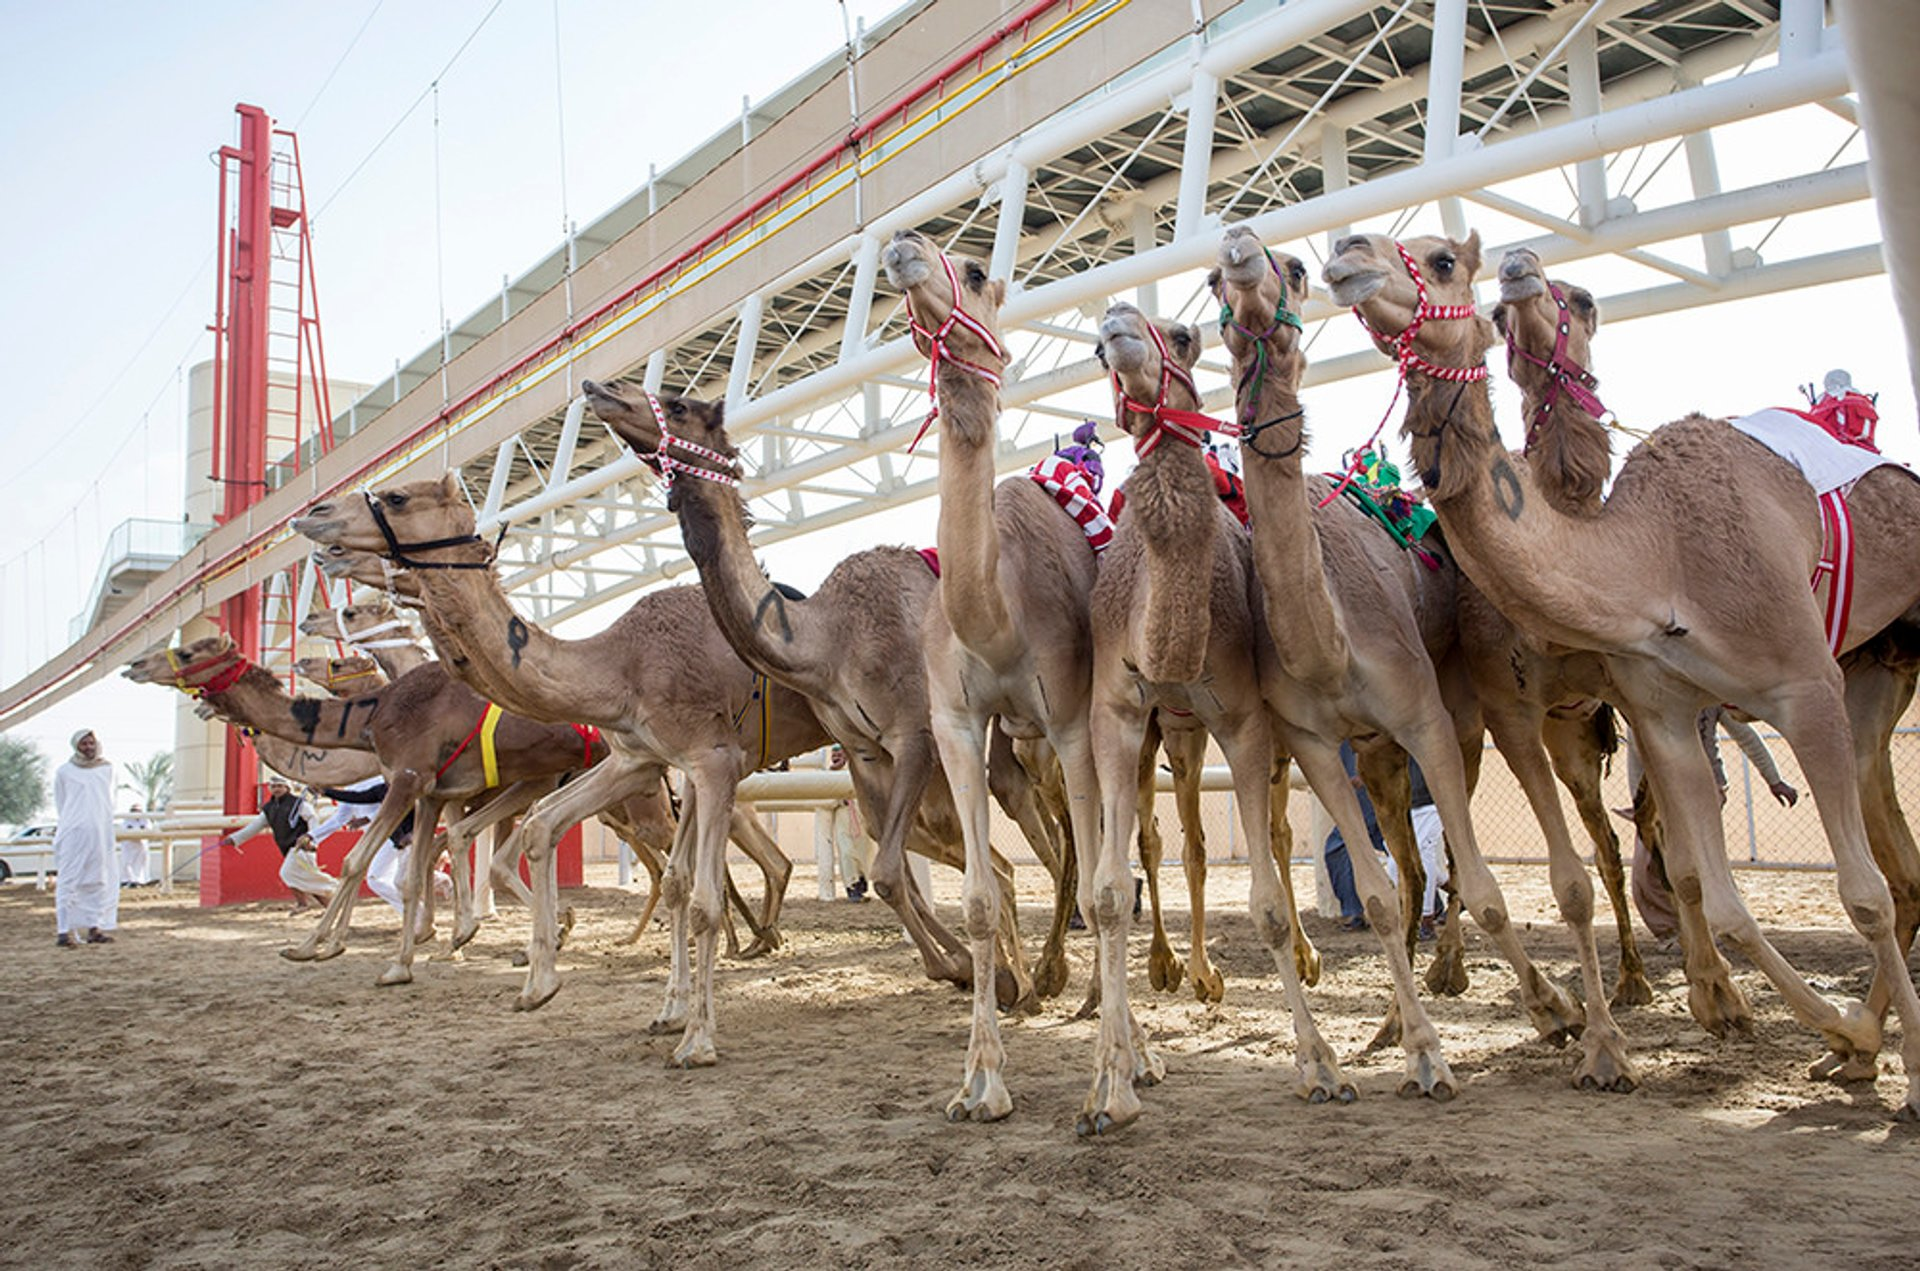 Camel Racing Season in Dubai - Best Season 2020